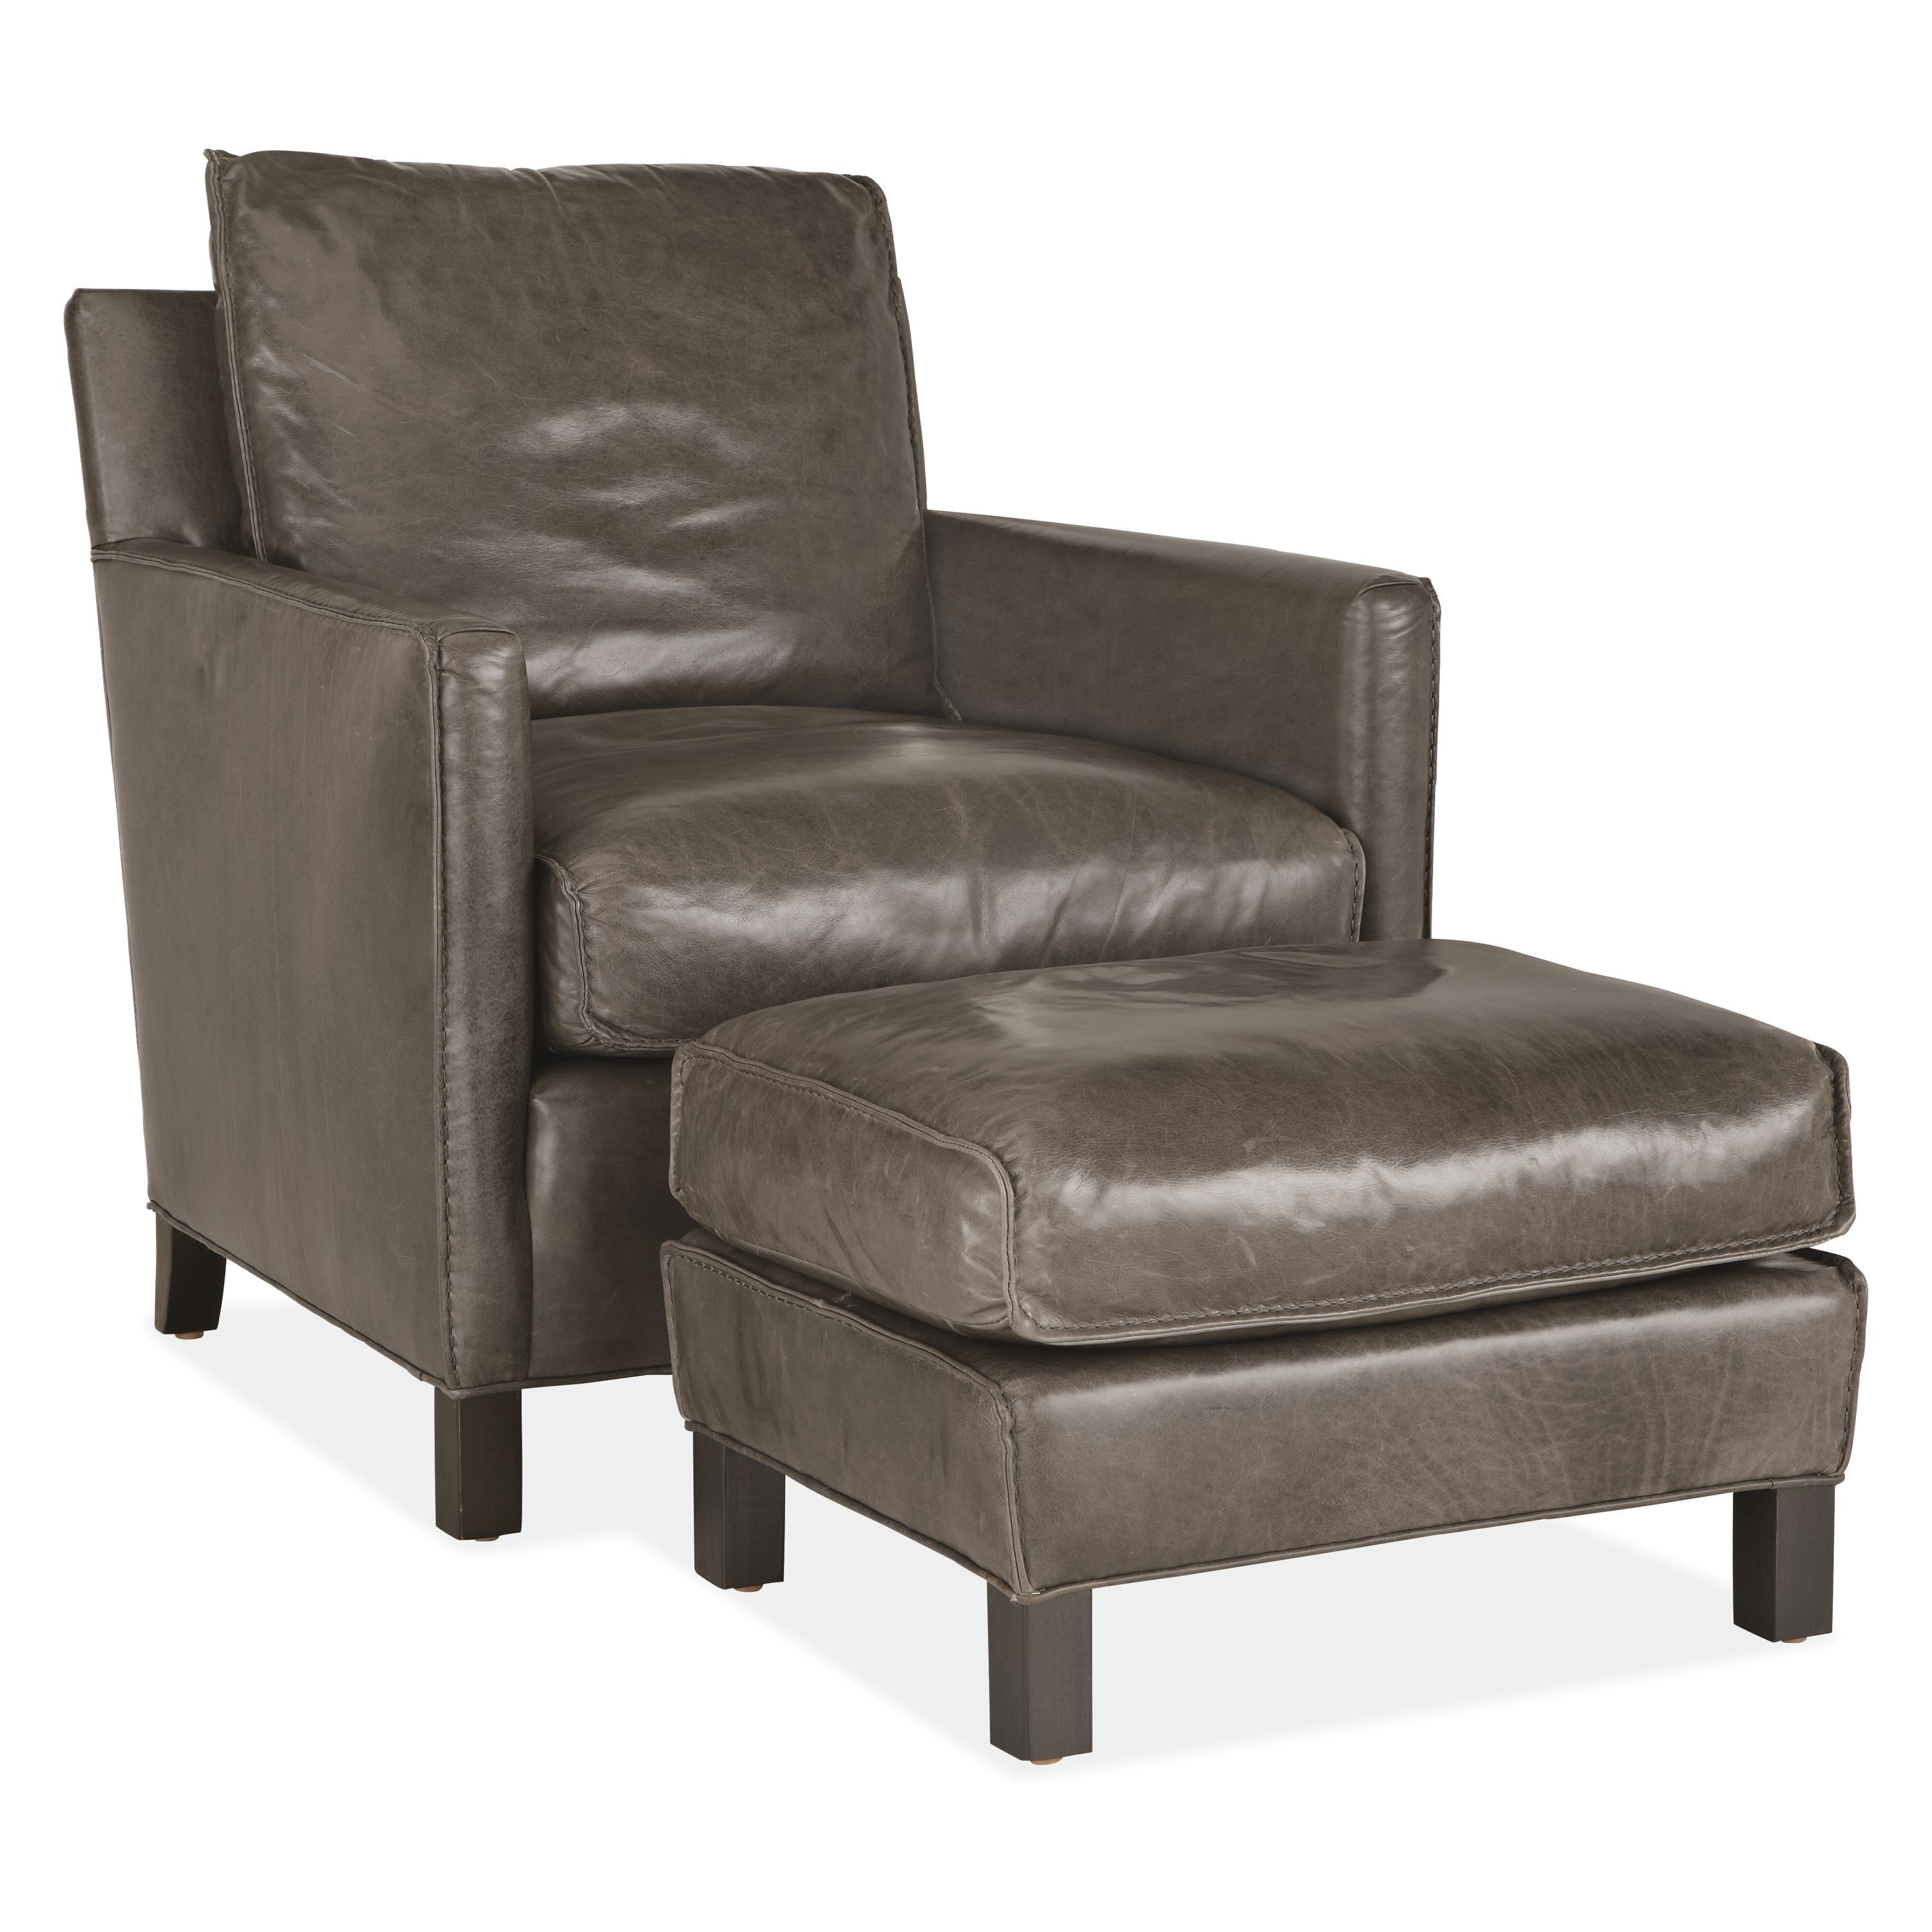 Stupendous Bram Leather Chair Ottoman Products Leather Ottoman Dailytribune Chair Design For Home Dailytribuneorg